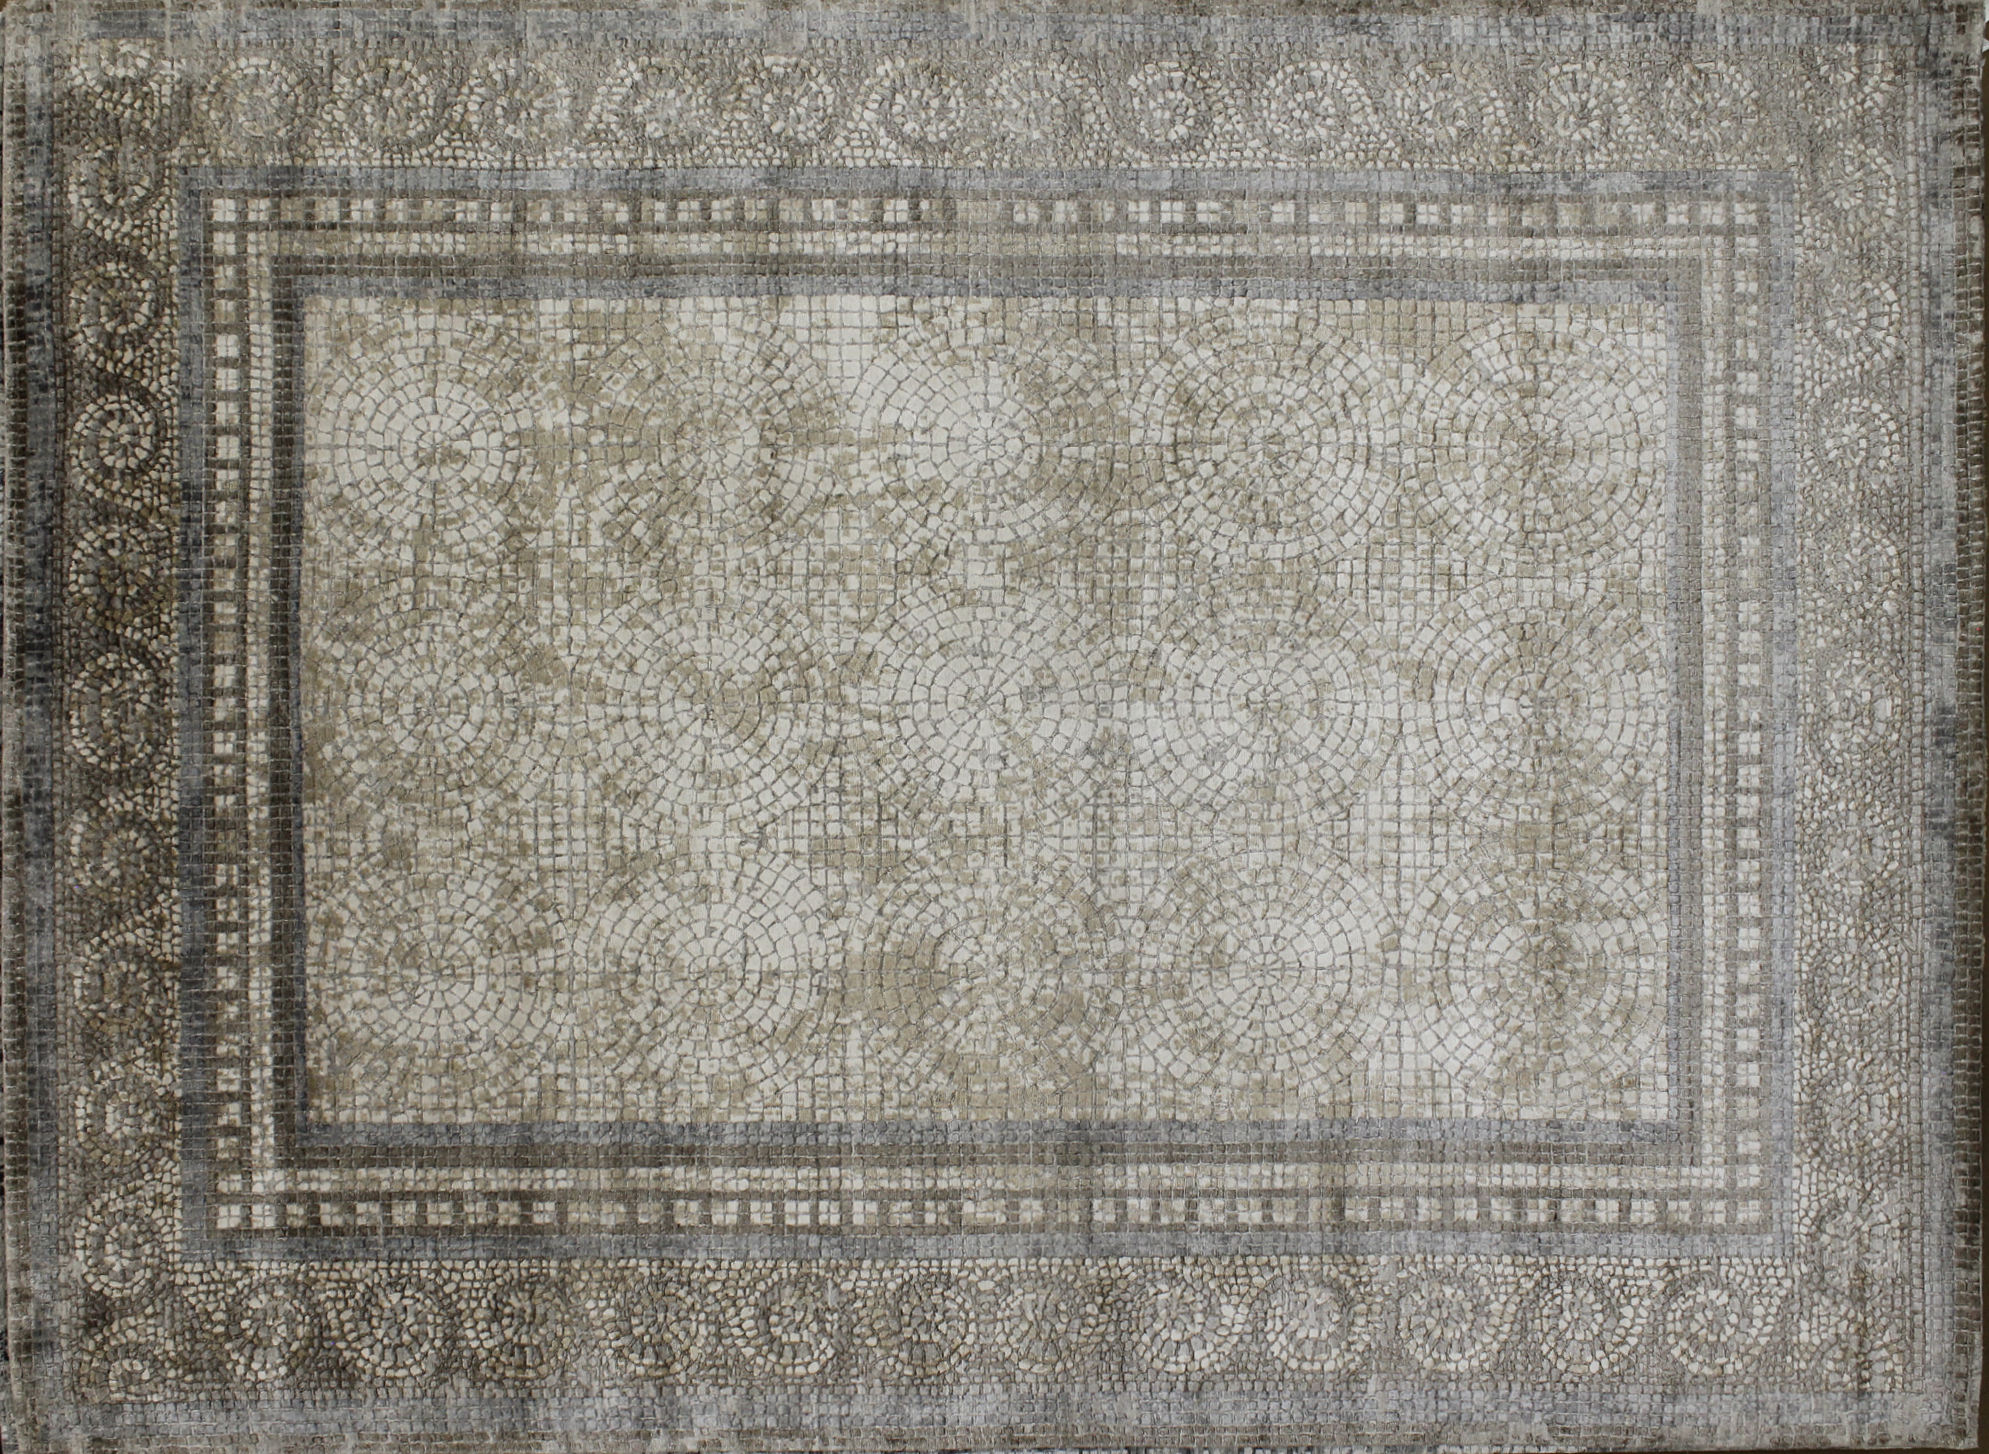 9x12 Transitional Hand Knotted Wool & Viscose Area Rug - MR022657